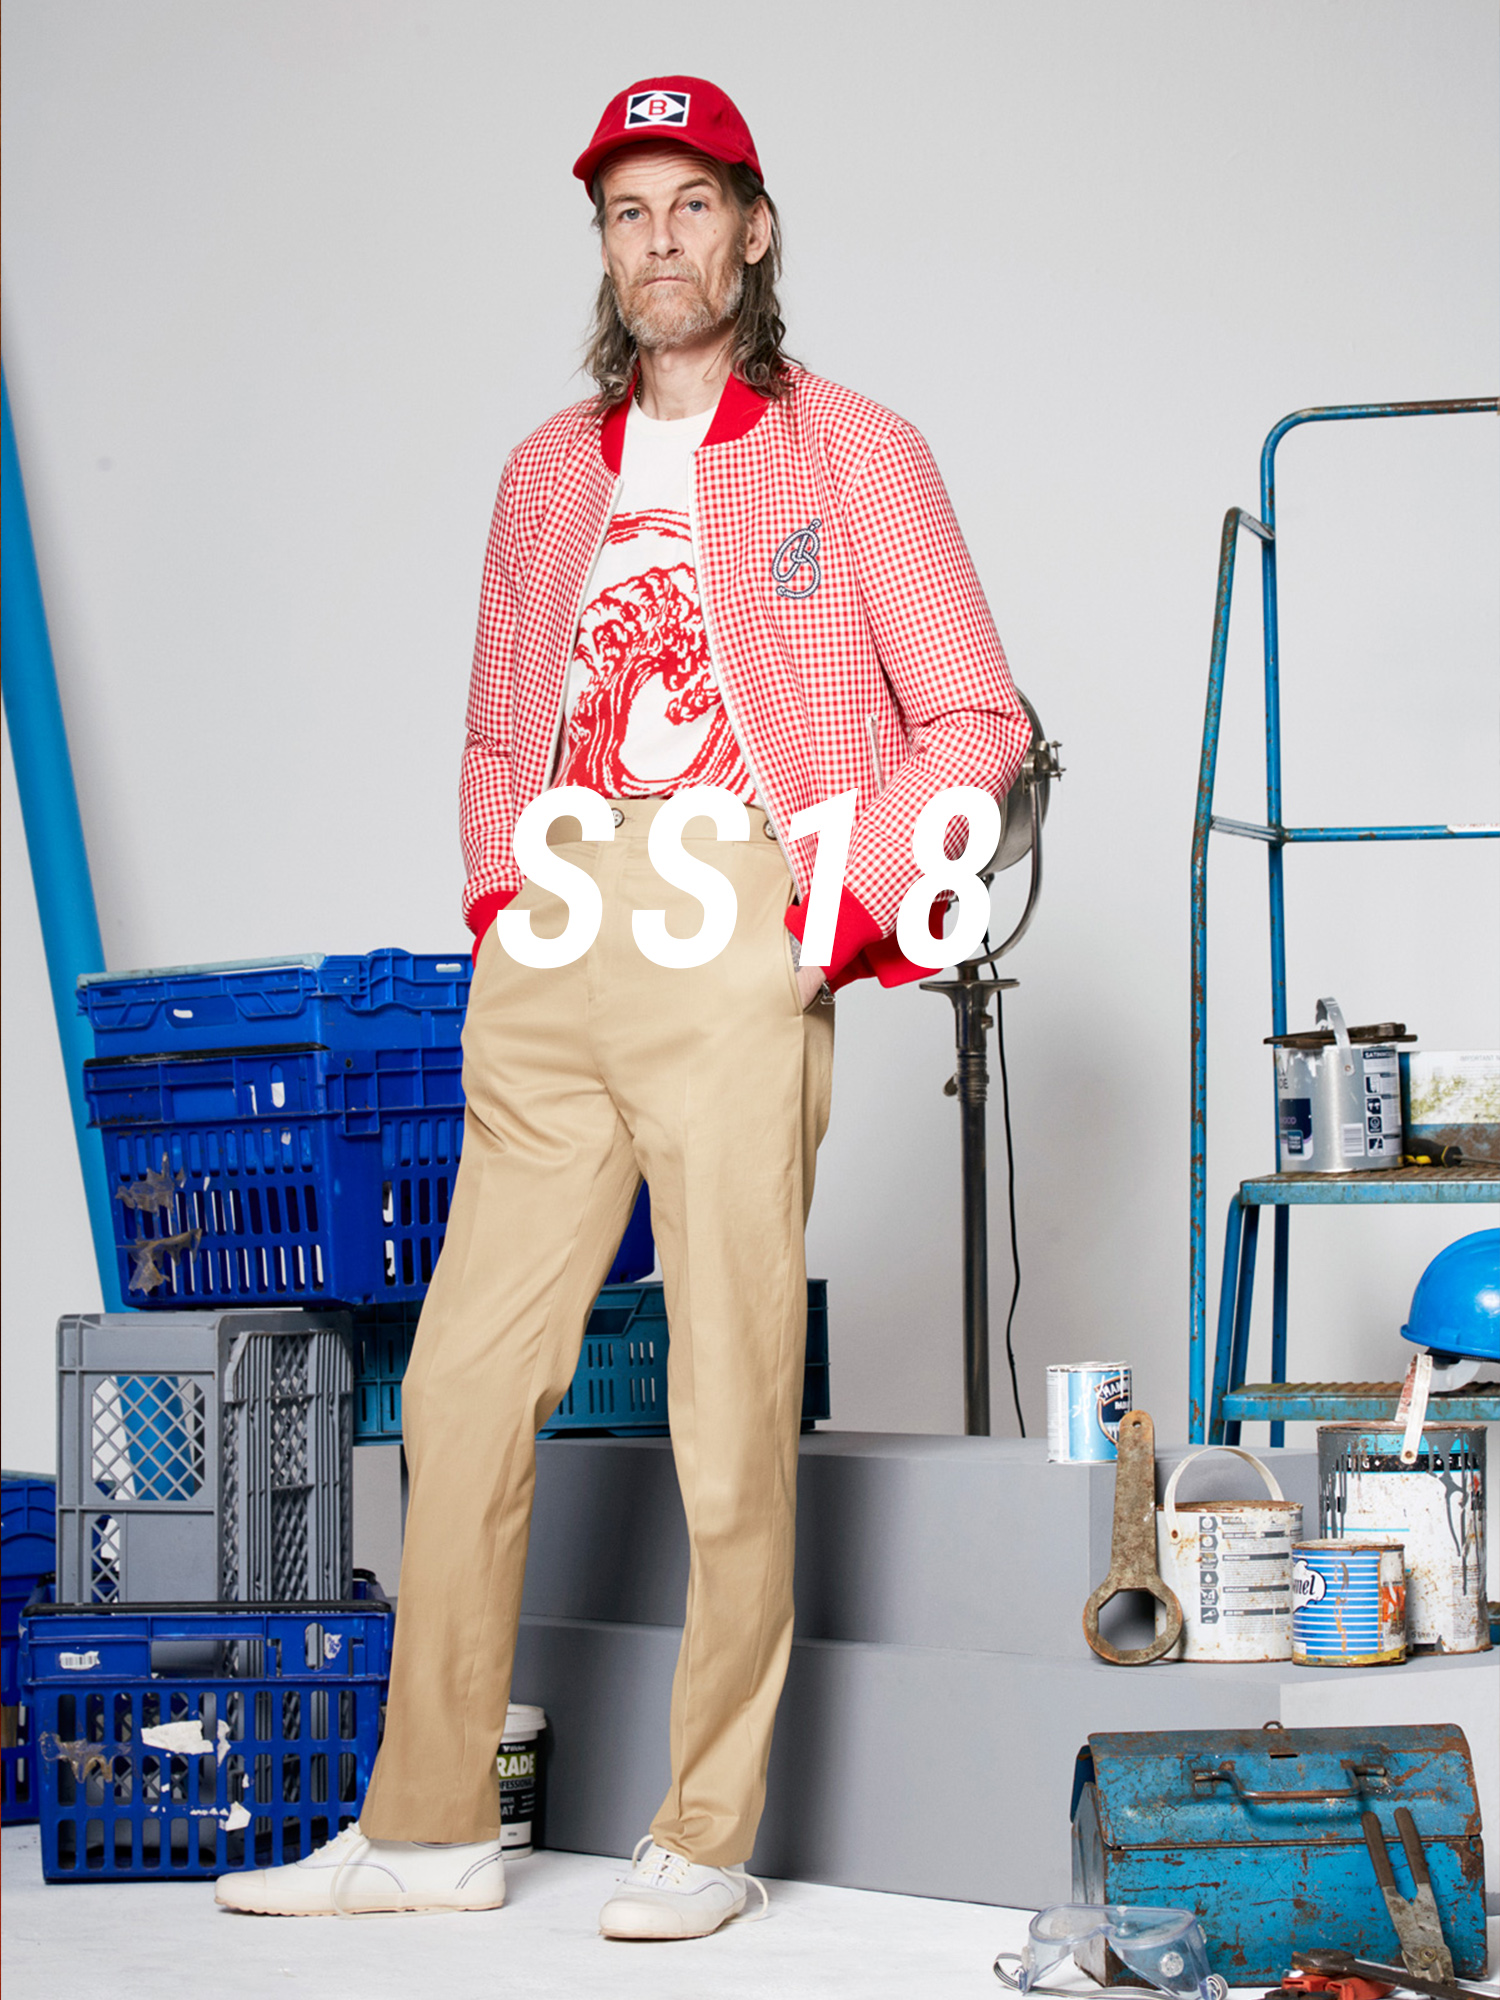 BAND OF OUTSIDERS SS18 LOOKBOOK      06 june 2017